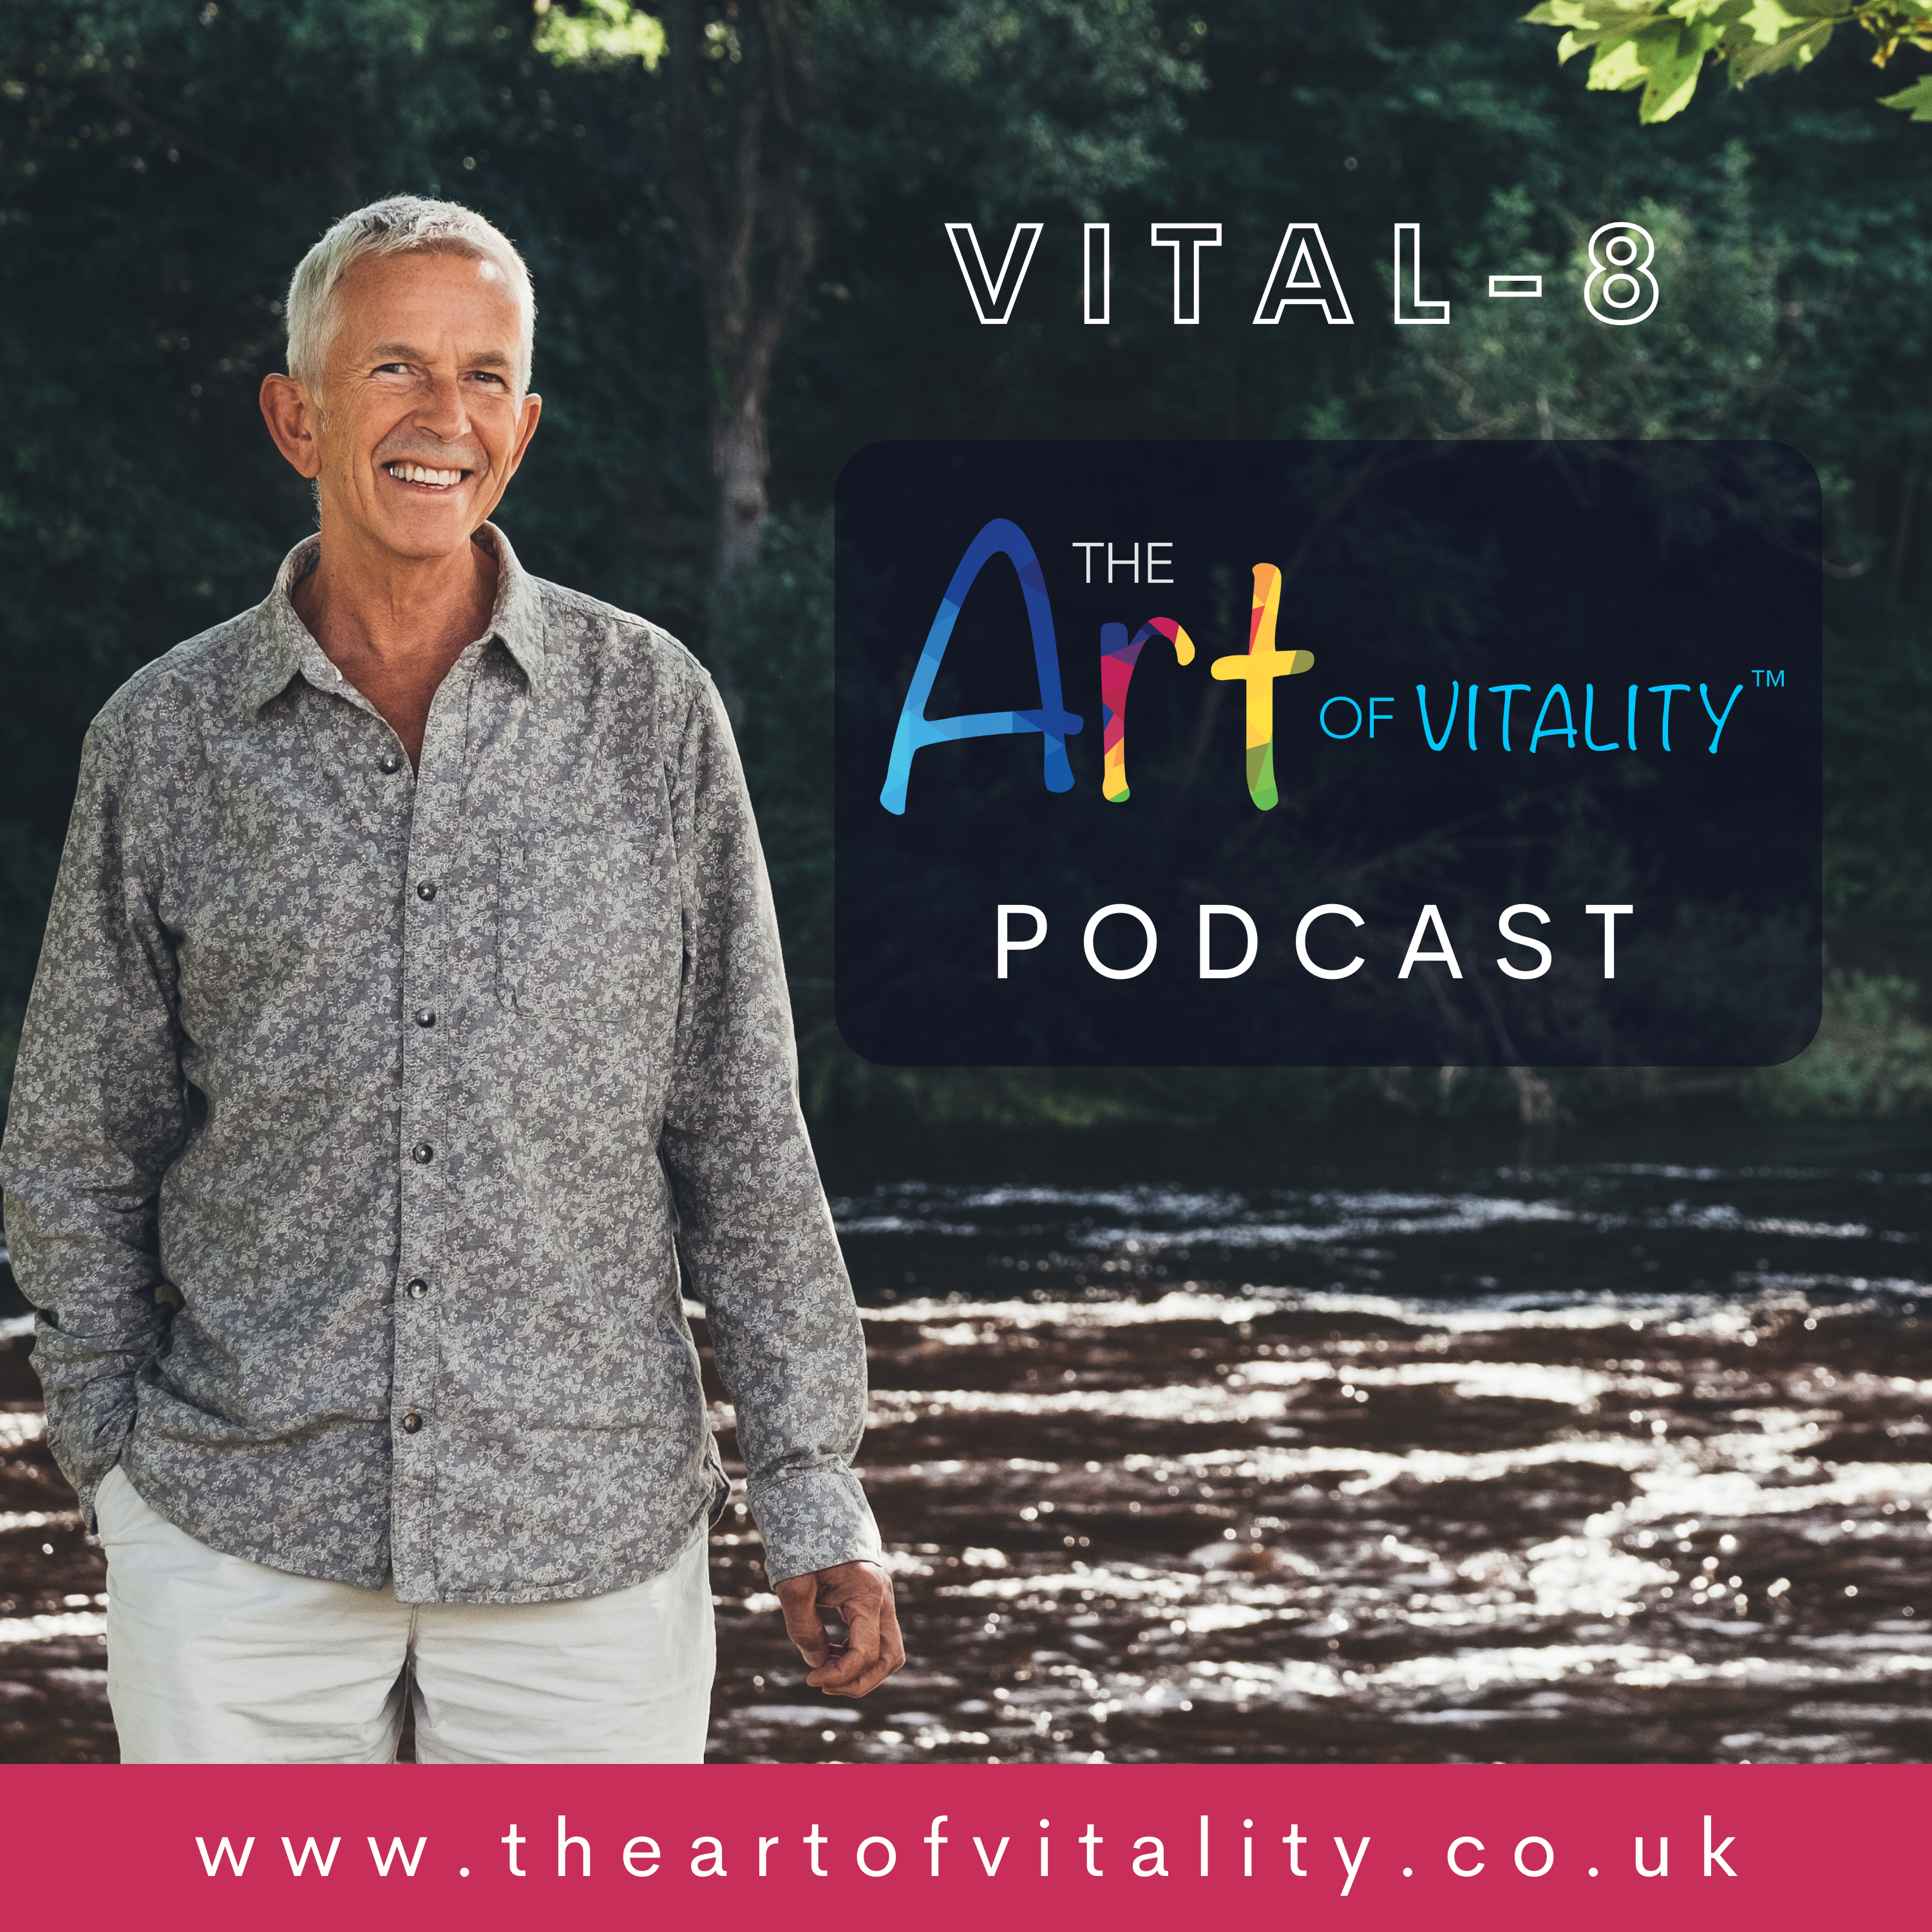 The Art of Vitality by Rob Bee